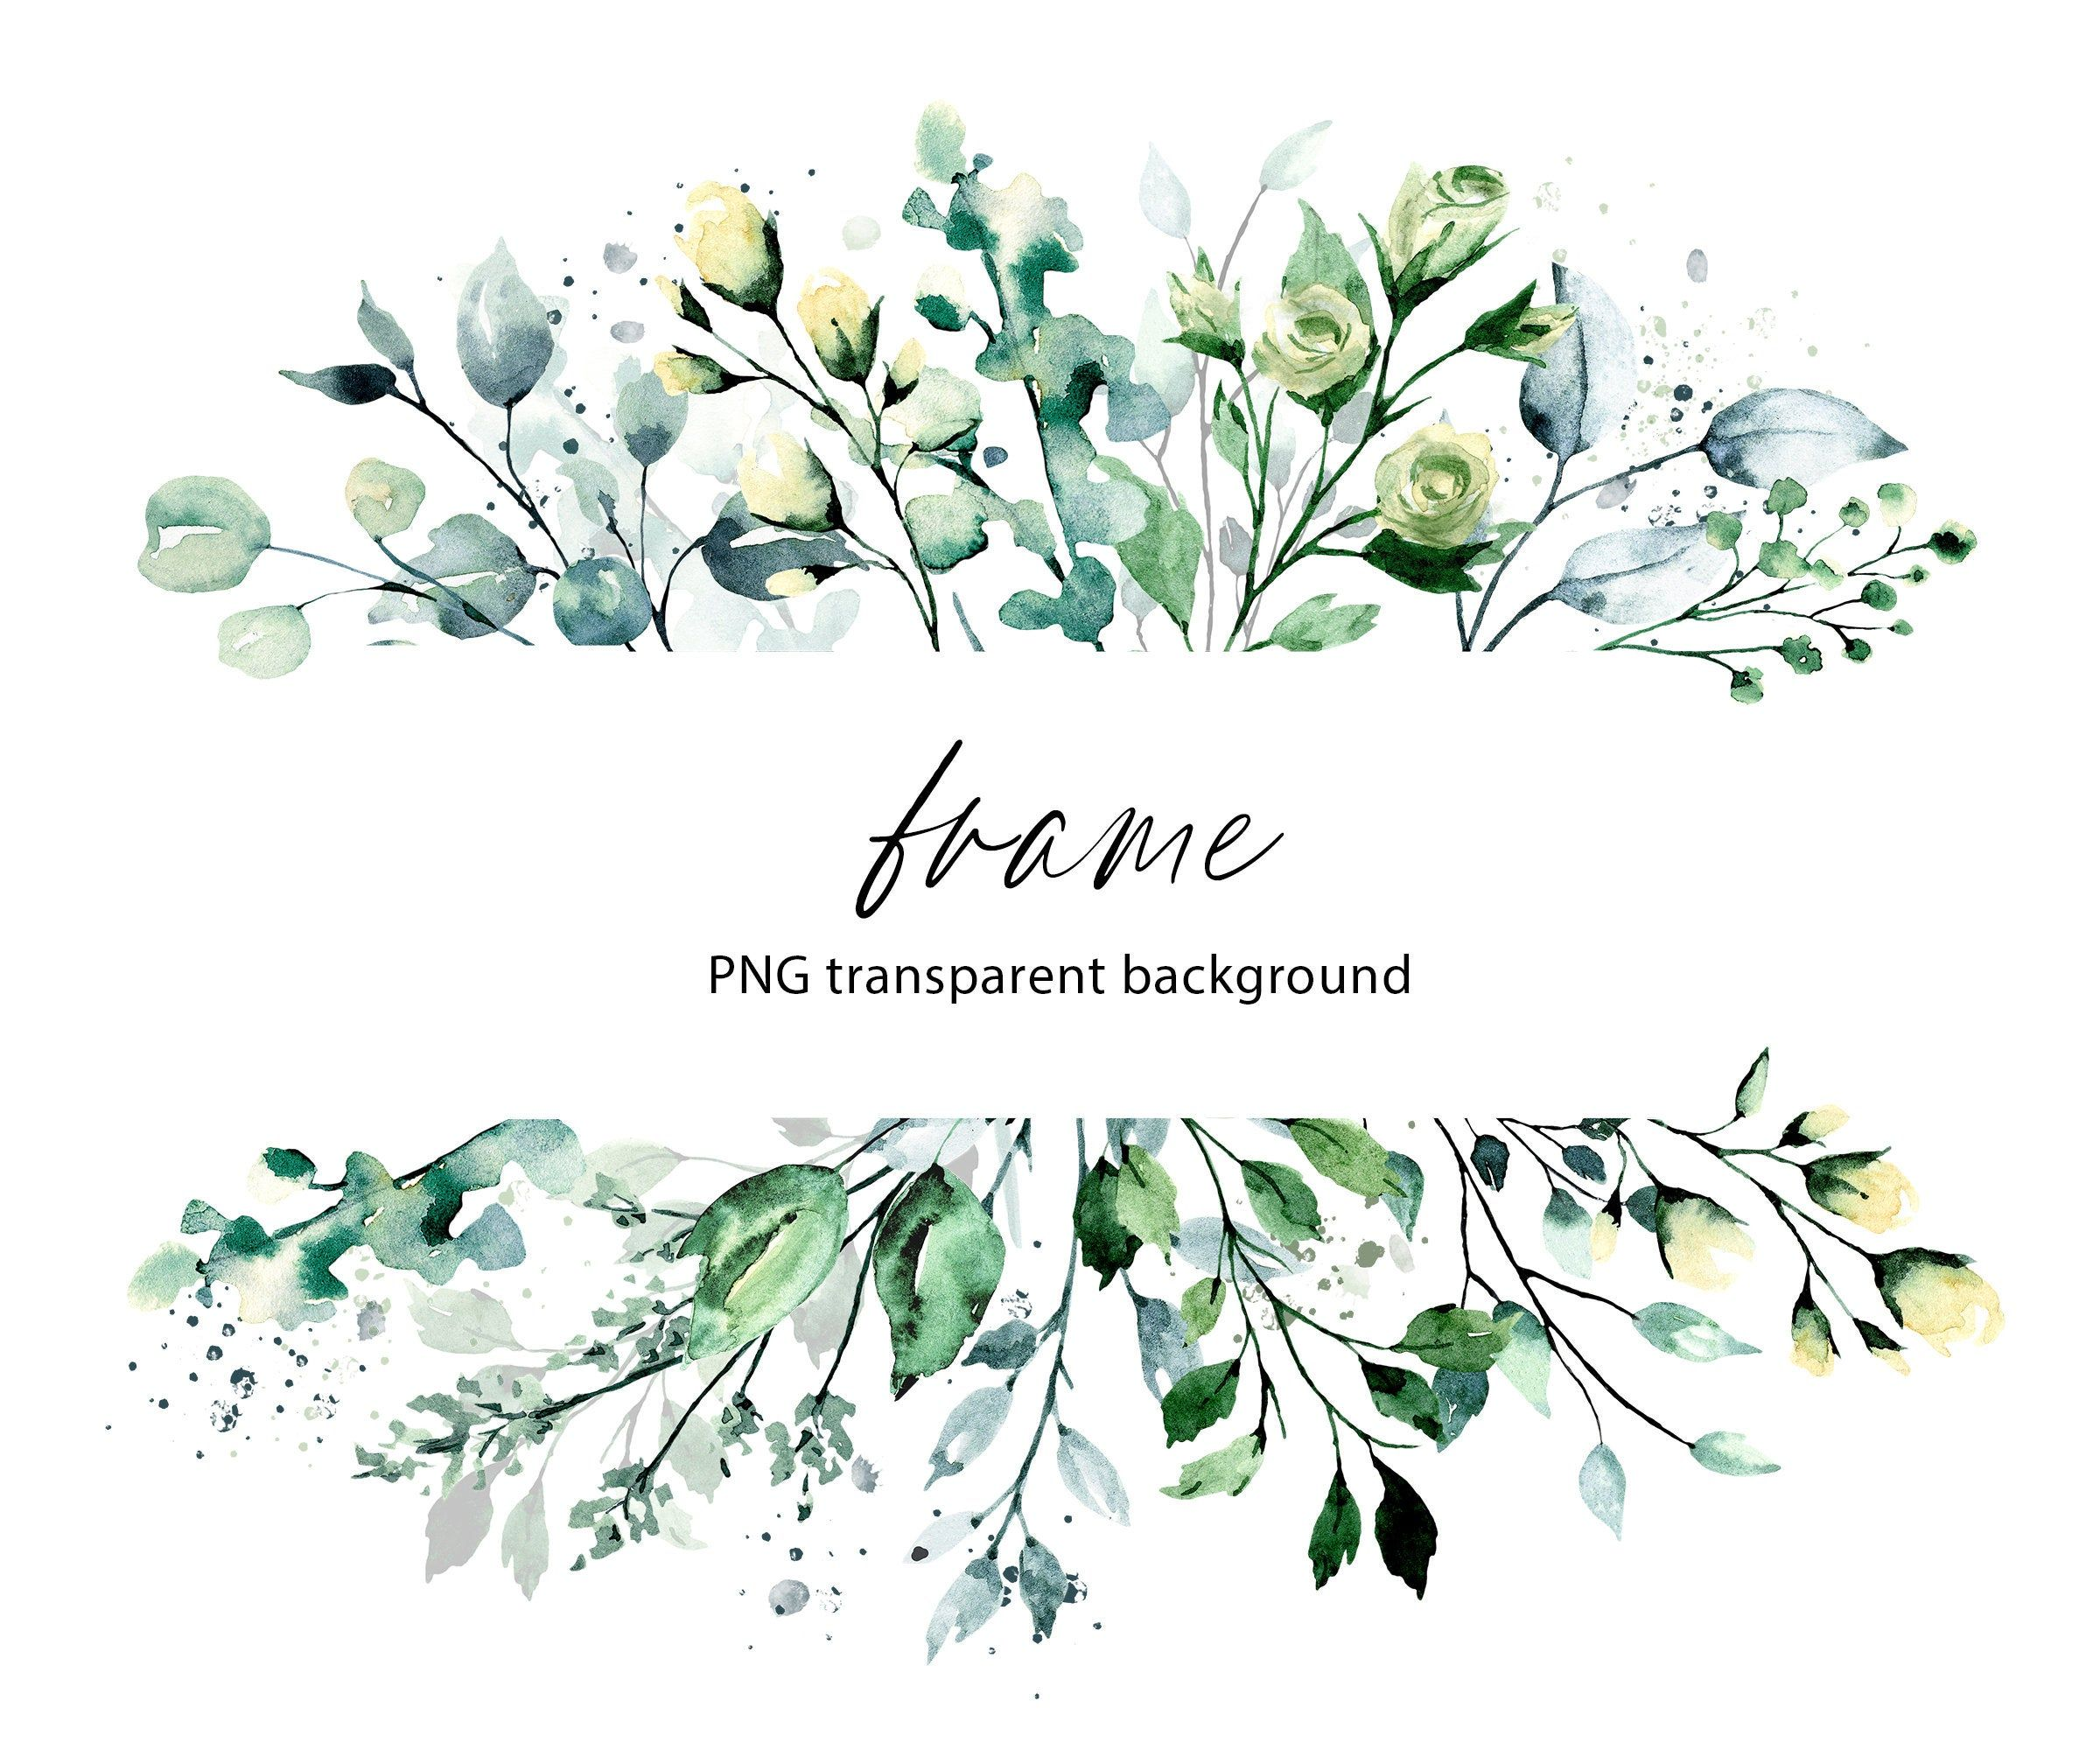 Leaf Frame Watercolor Leaves Clipart Foliage Border Floral Frame Png Transparent Background Aquarelle Clipart Free Commercial Use In 2021 Watercolor Leaves Leaf Clipart Clip Art